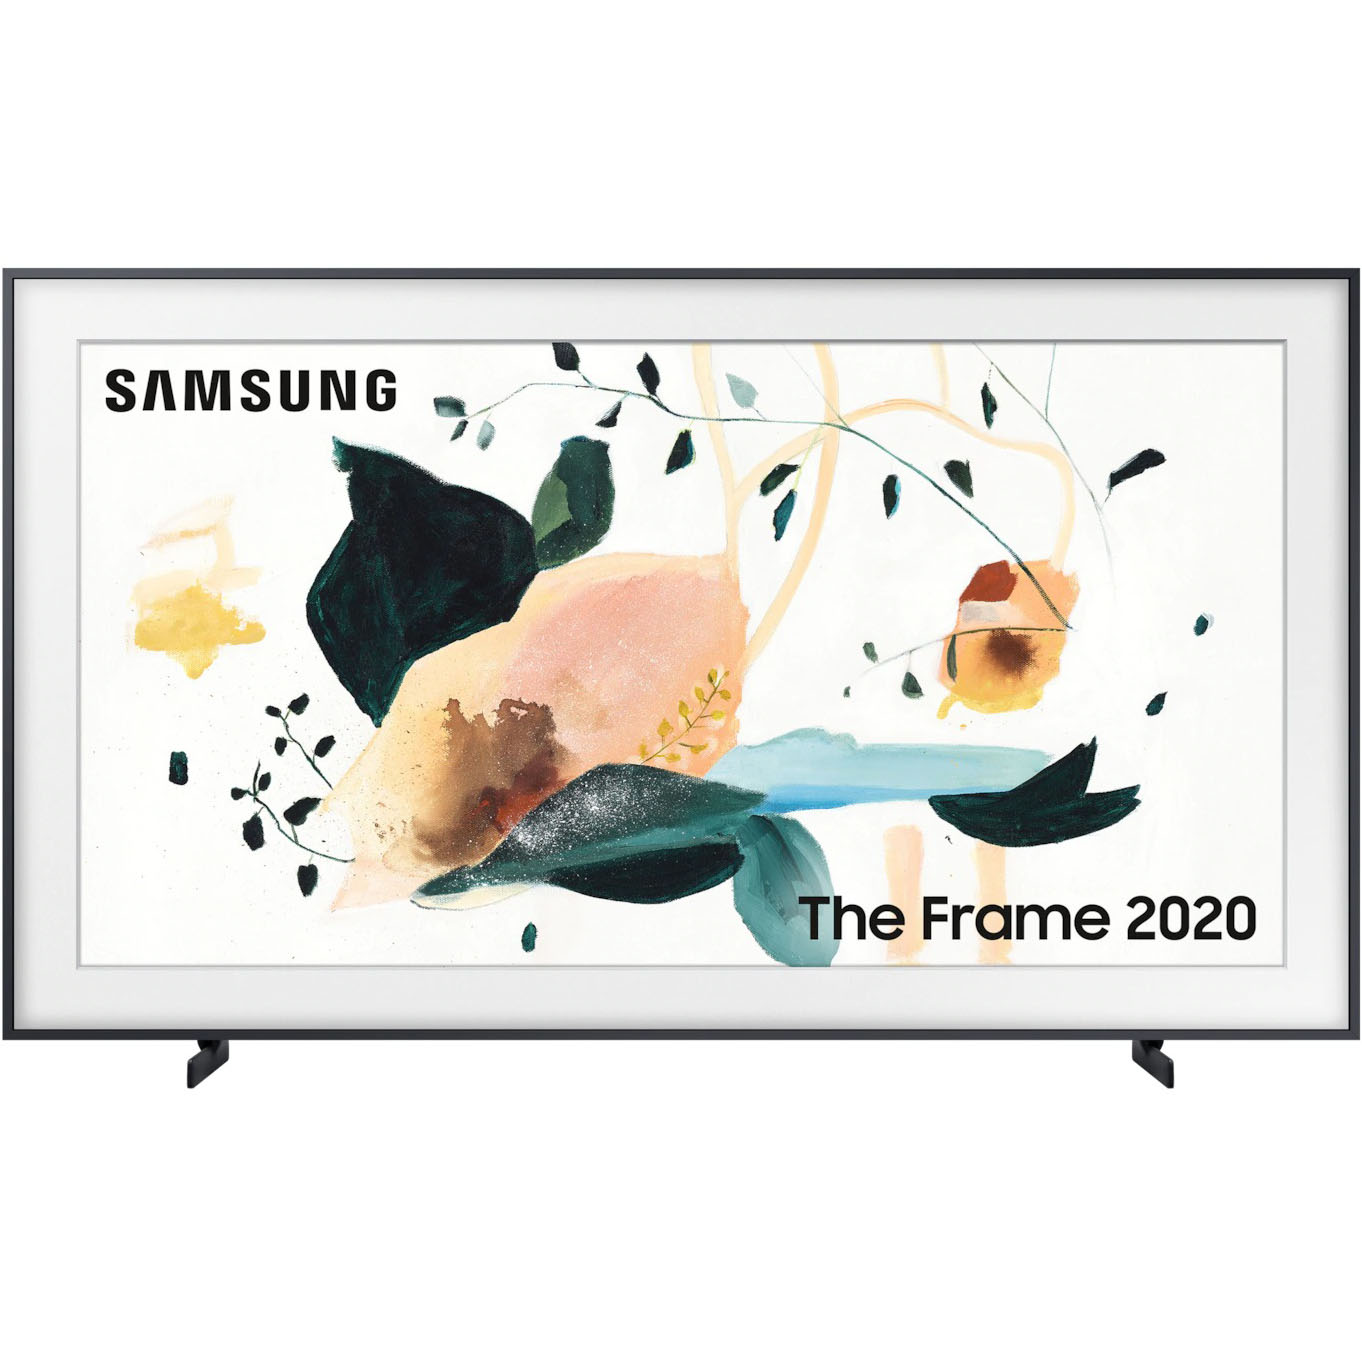 Фото - Телевизор Samsung The Frame TV 2020 QE50LS03TAUXRU the frame телевизор samsung qe32ls03tbkxru